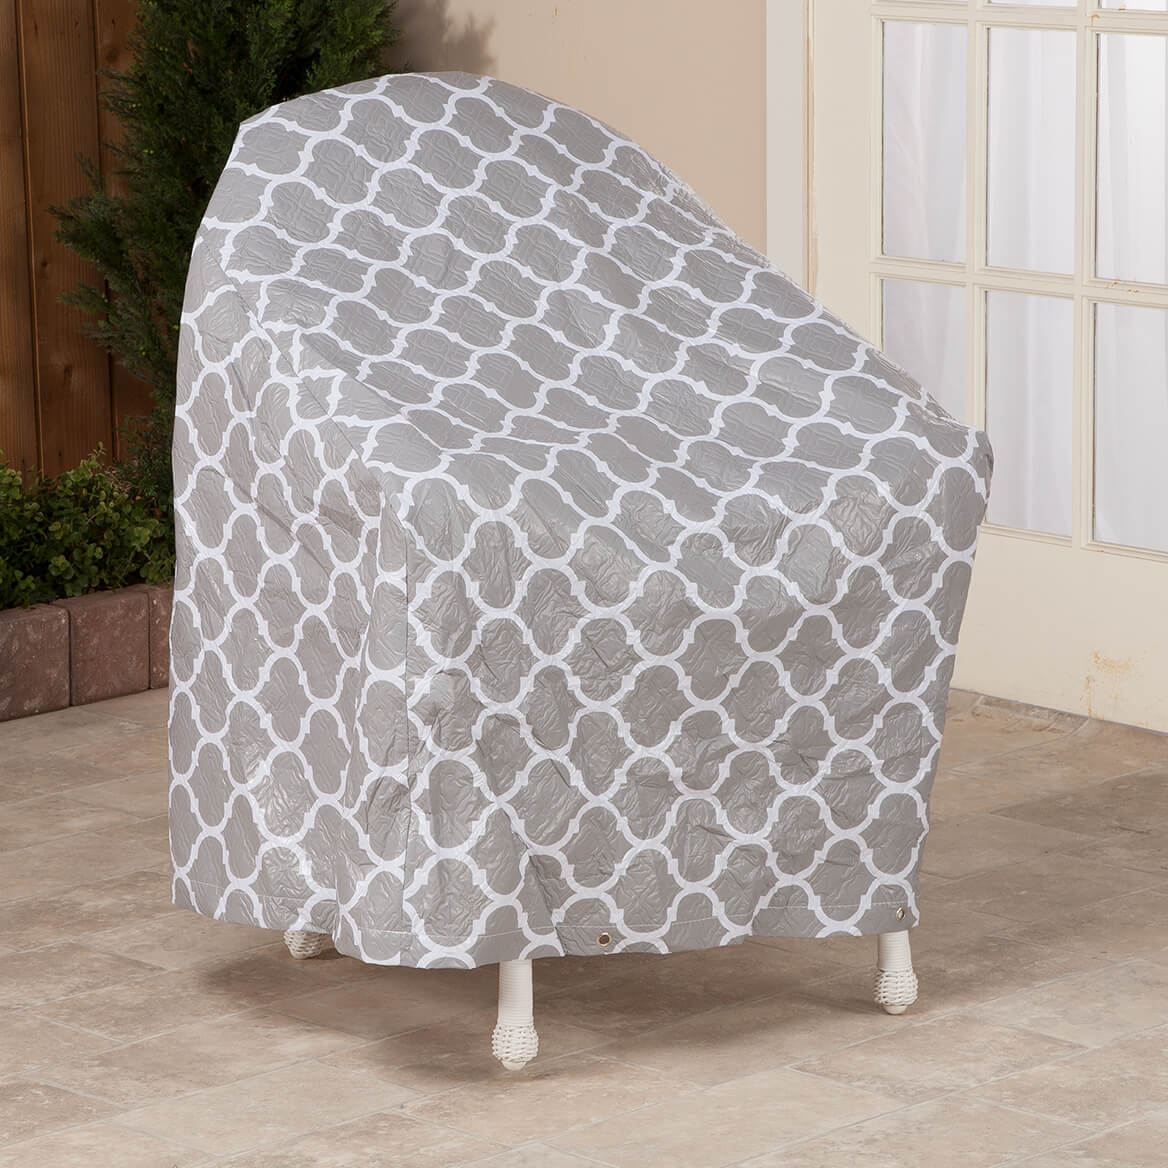 Quilted Lounge Chair Covers Outdoor Furniture Covers Miles Kimball